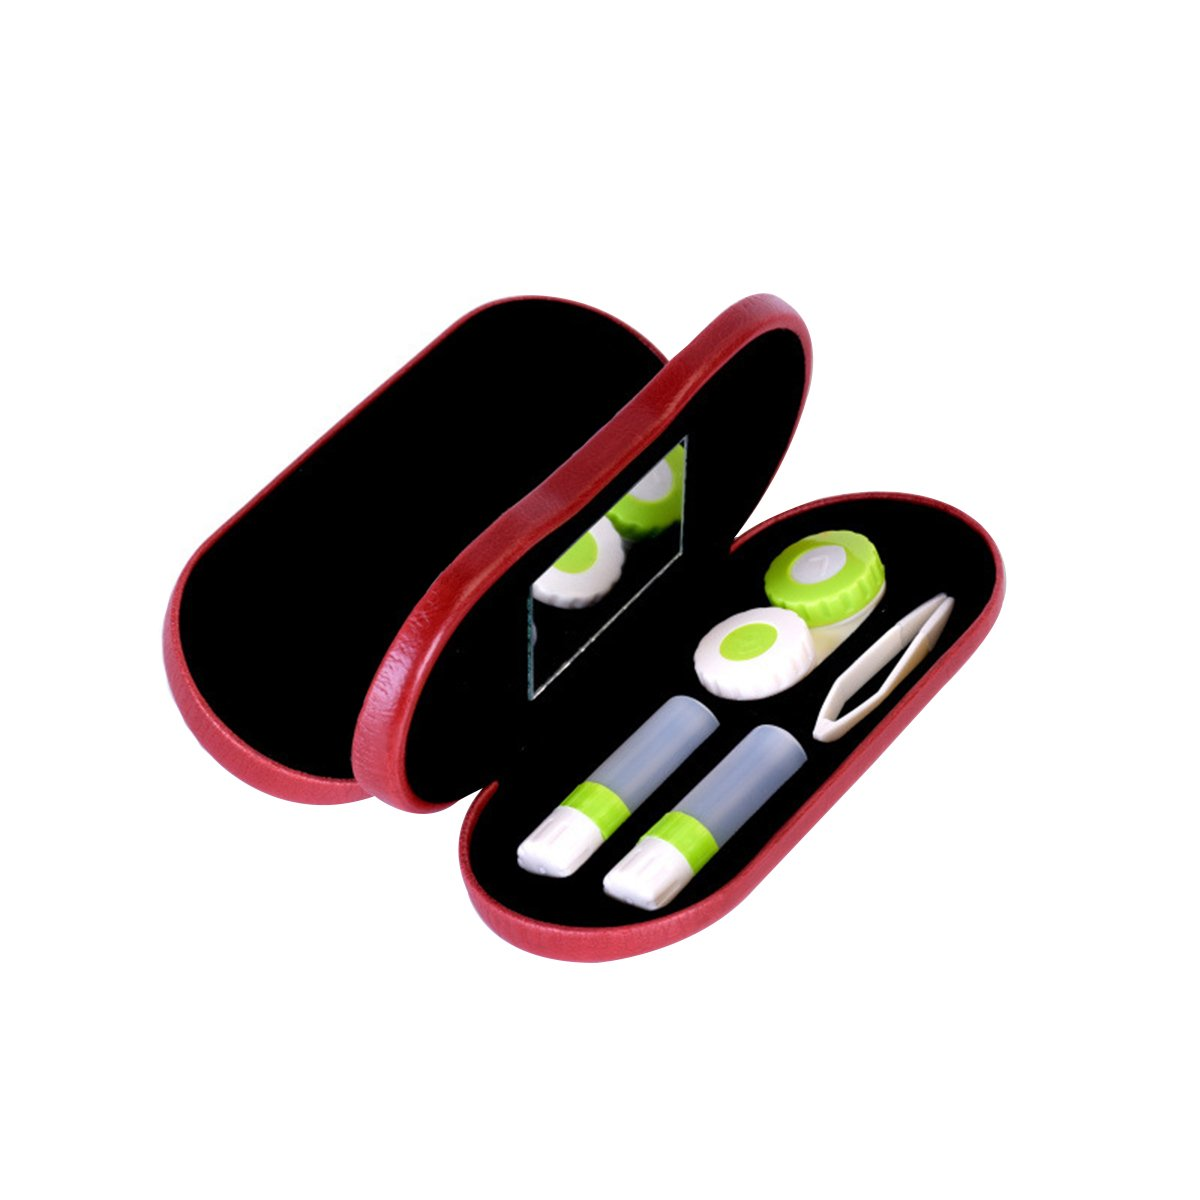 594d3cfa214 Get Quotations · ROSENICE Contact Lenses 2-in-1 Eyeglass and Contact Lens  Case Double Use Portable